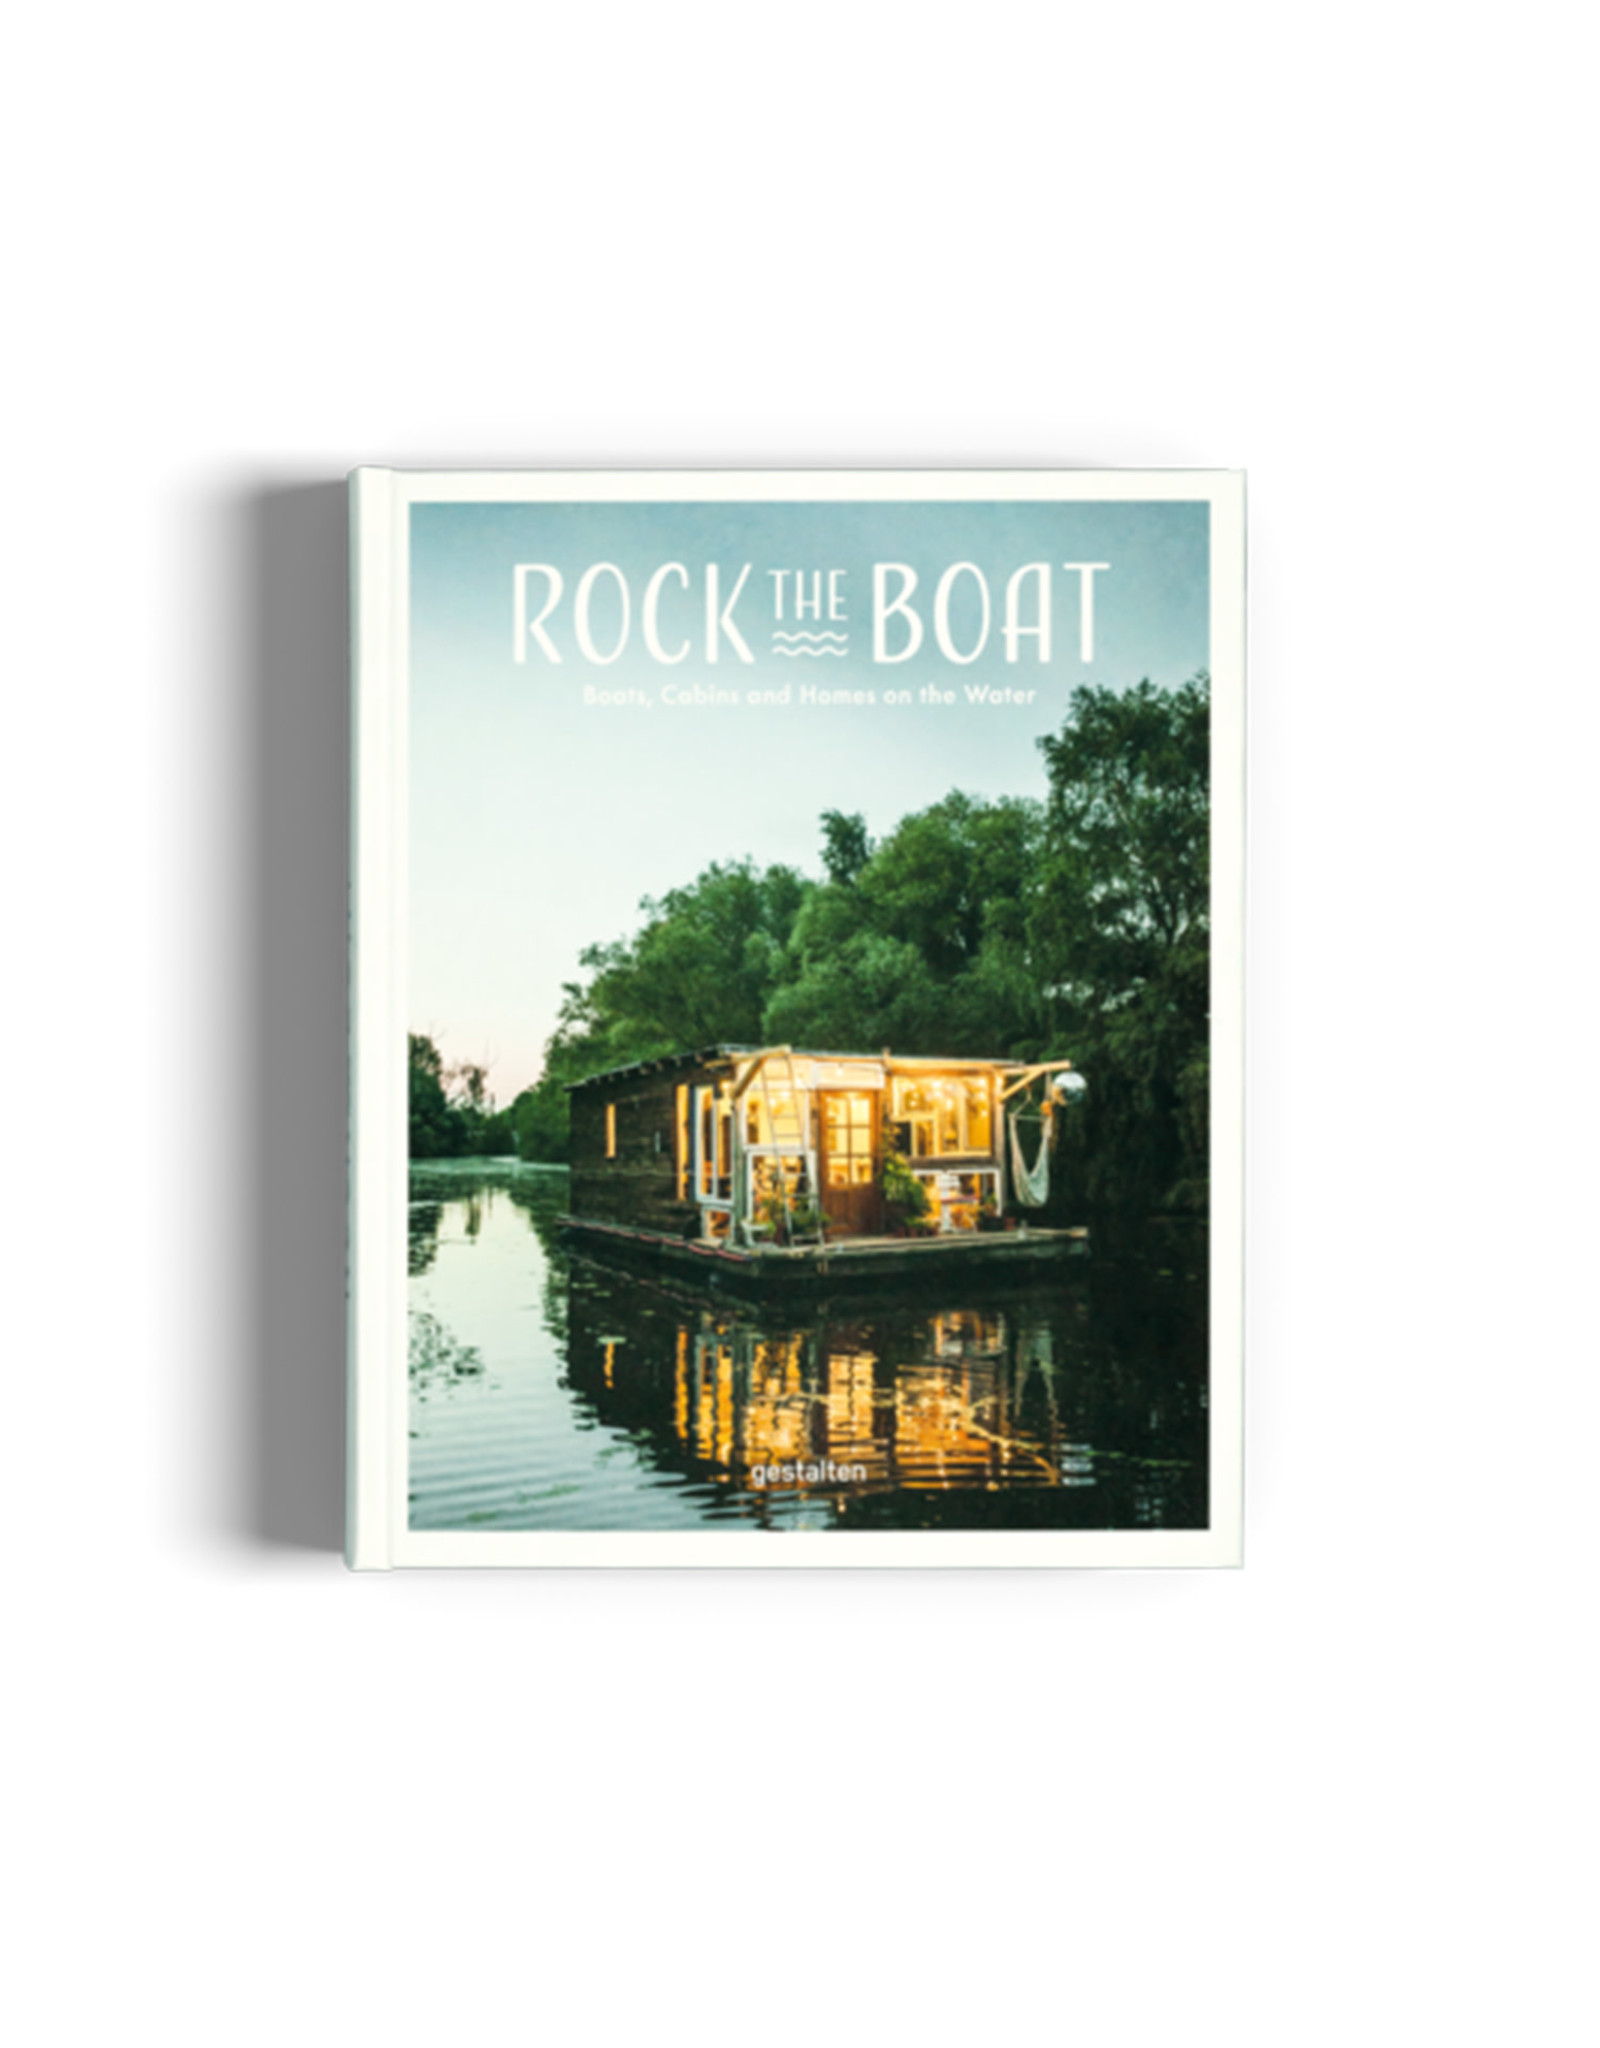 Rock the Boat: Boats, Cabins and Homes on the Waterfront